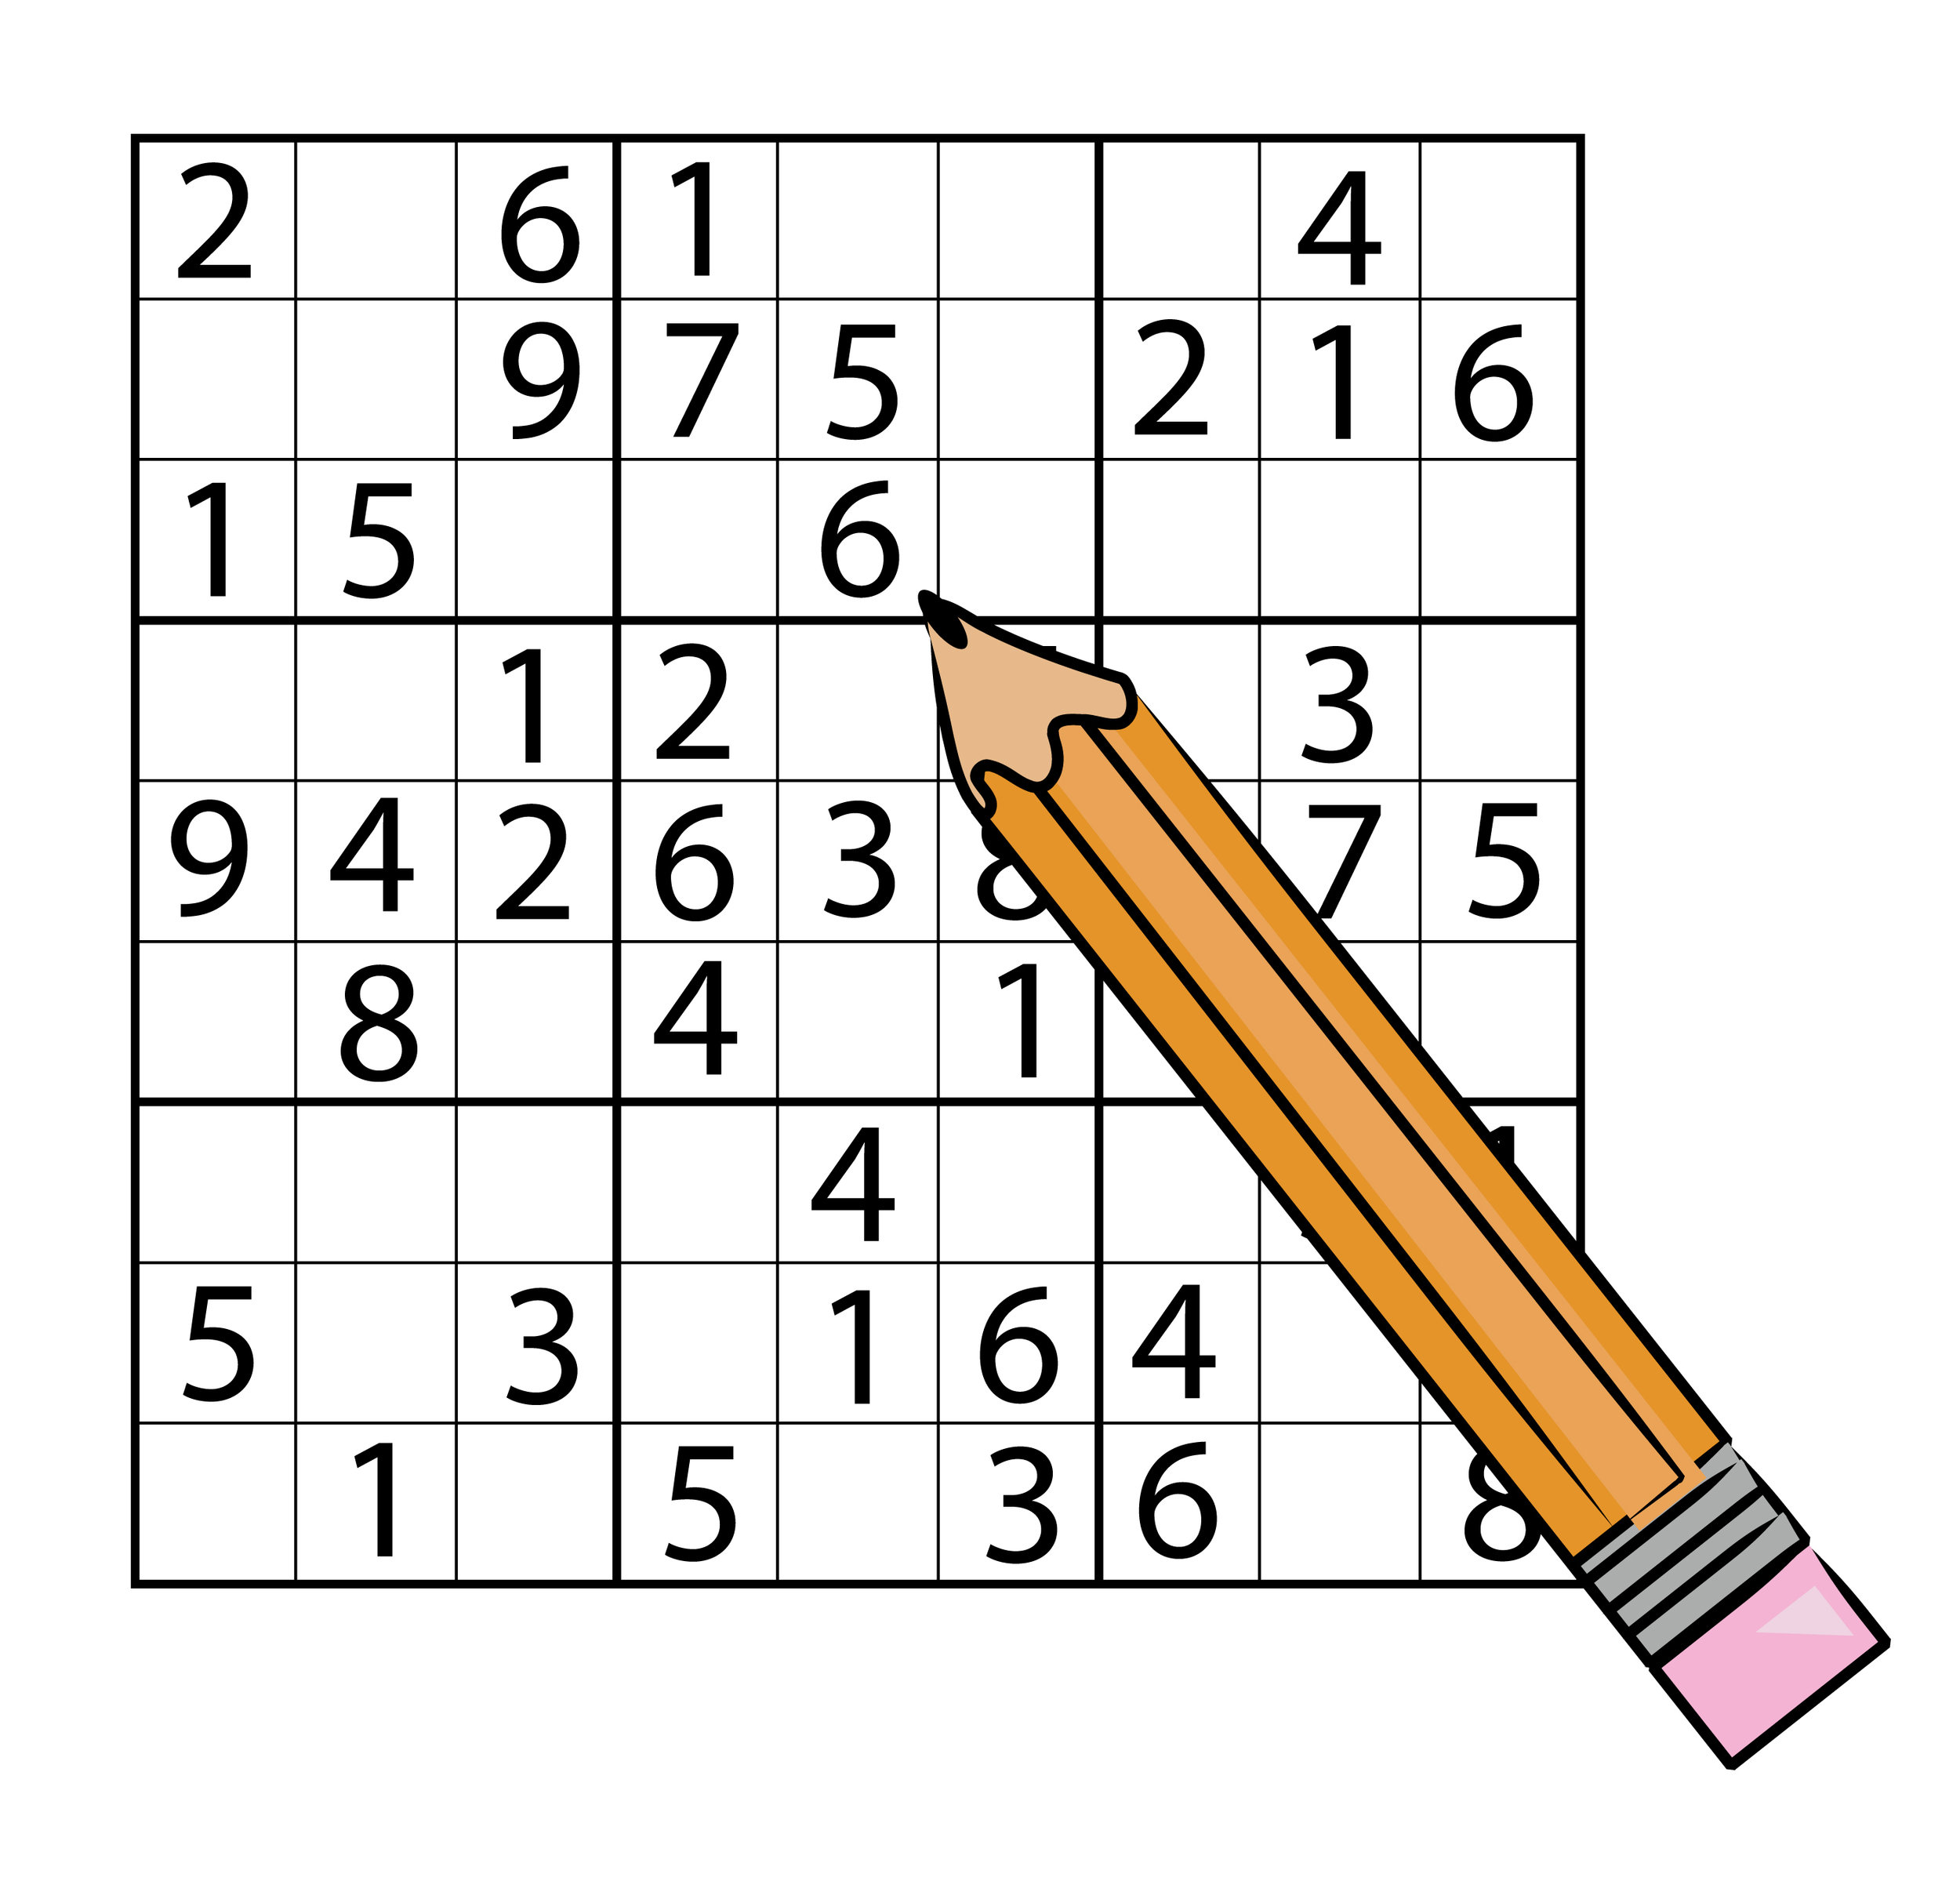 Source: websudoku.com